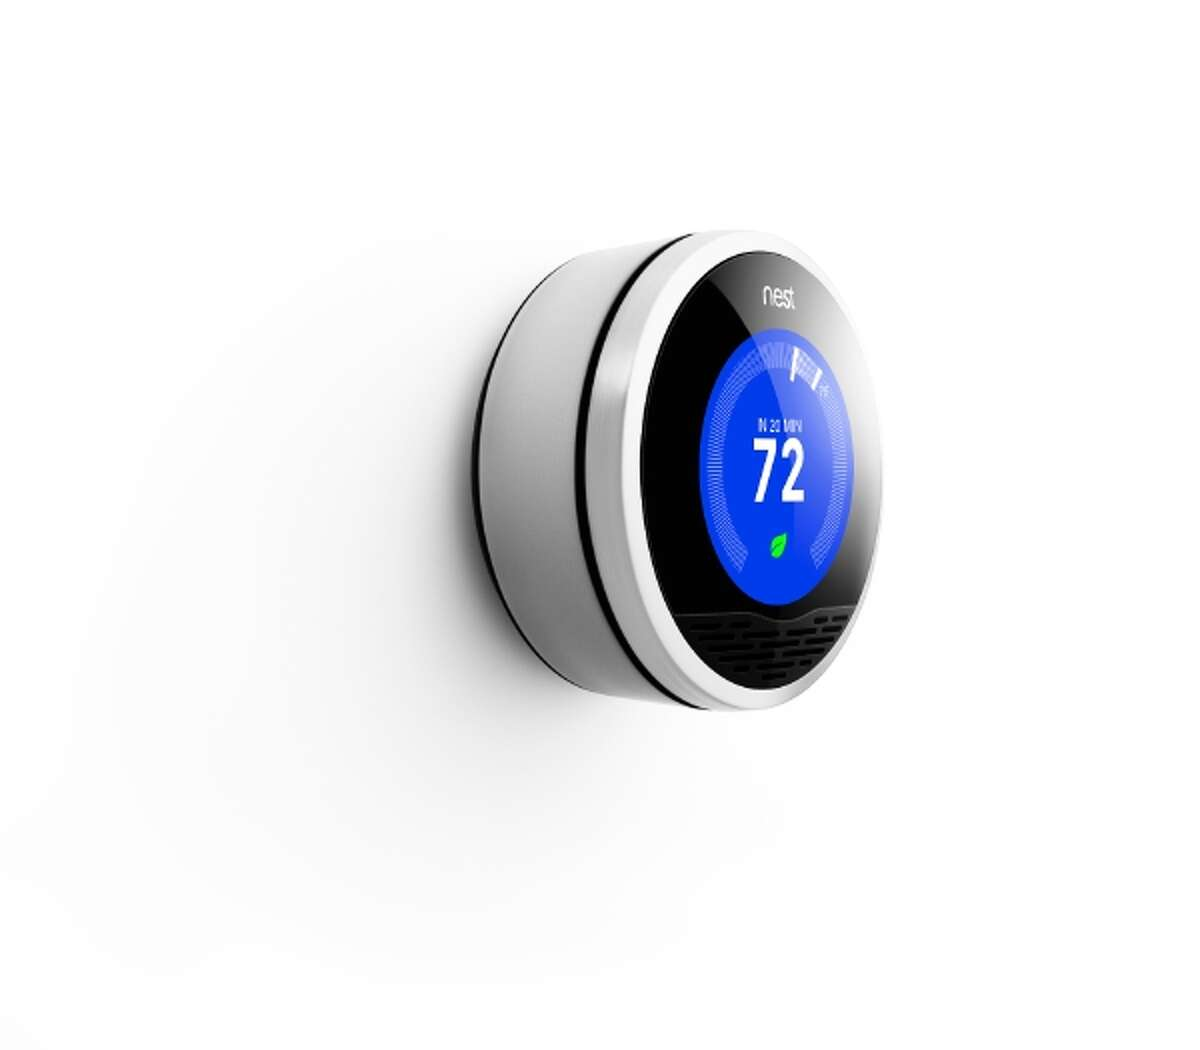 Learning Thermostat by Nest Labs. The Nest smart learning thermostat adopts to its user's lifestyle as well as weather conditions. Will the company's next product be a smoke detector?